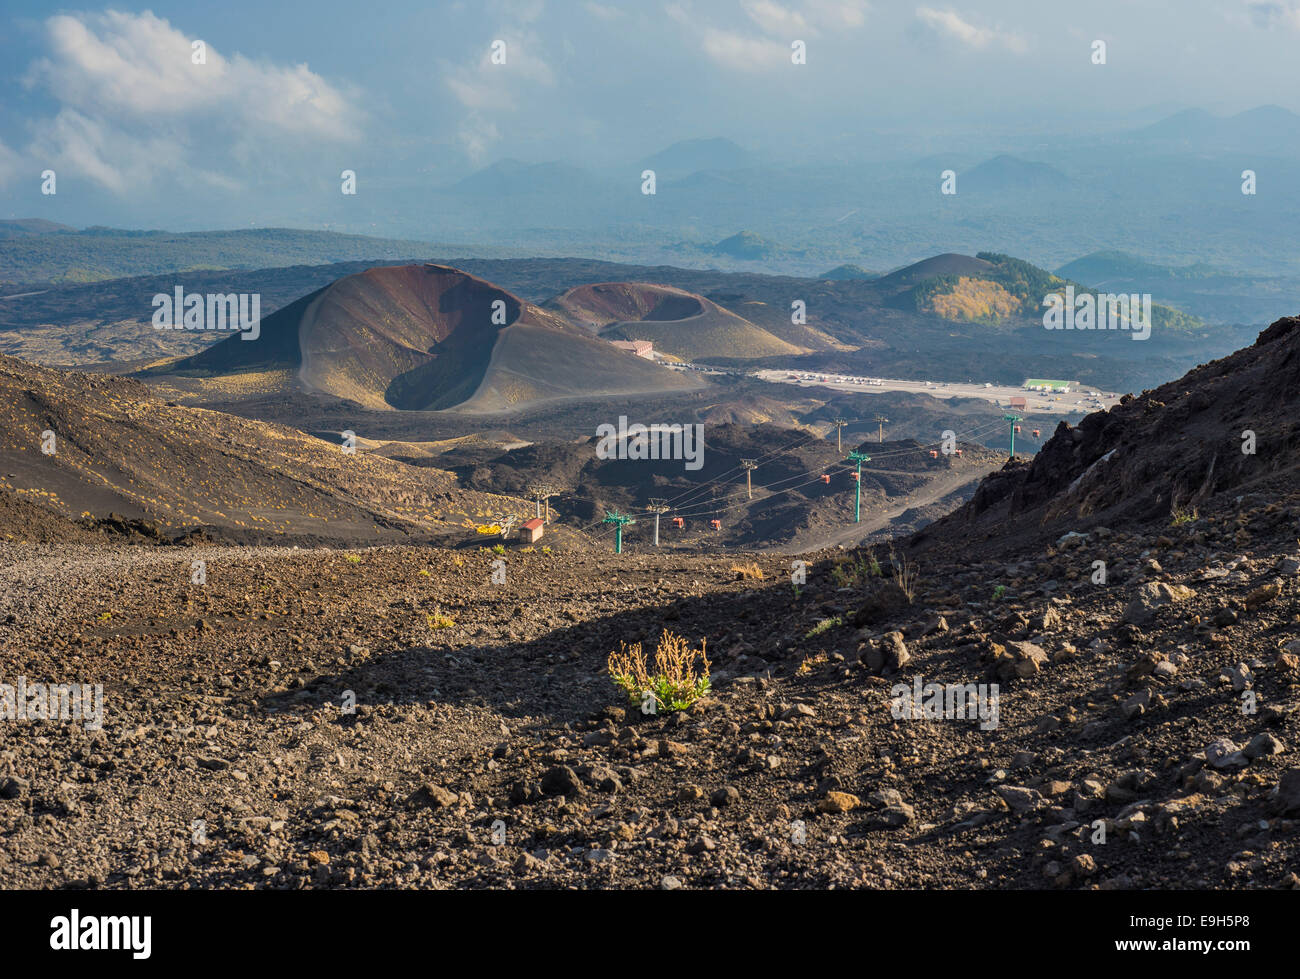 Lava fields, craters and cable car, south side, Mount Etna in Zafferana, Sicily, Italy - Stock Image